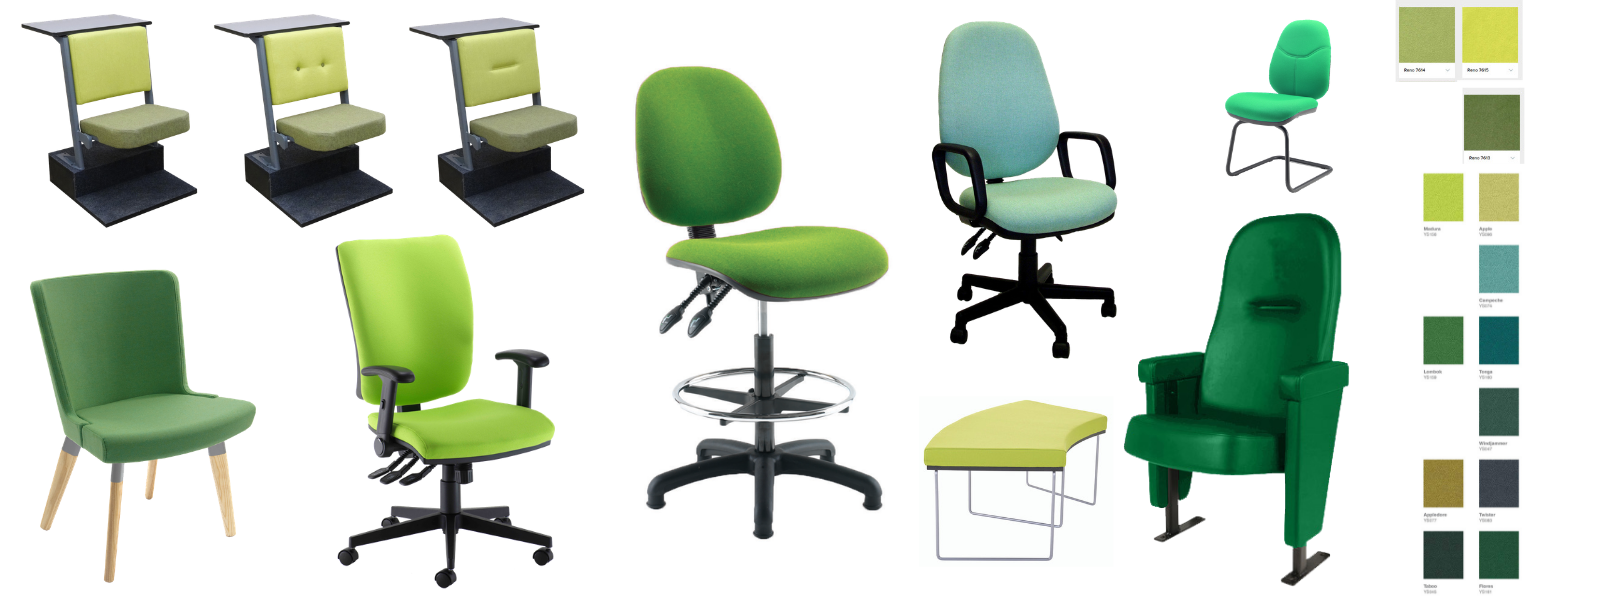 Selection of different chair styles in a variety of green fabrics with colour swatches